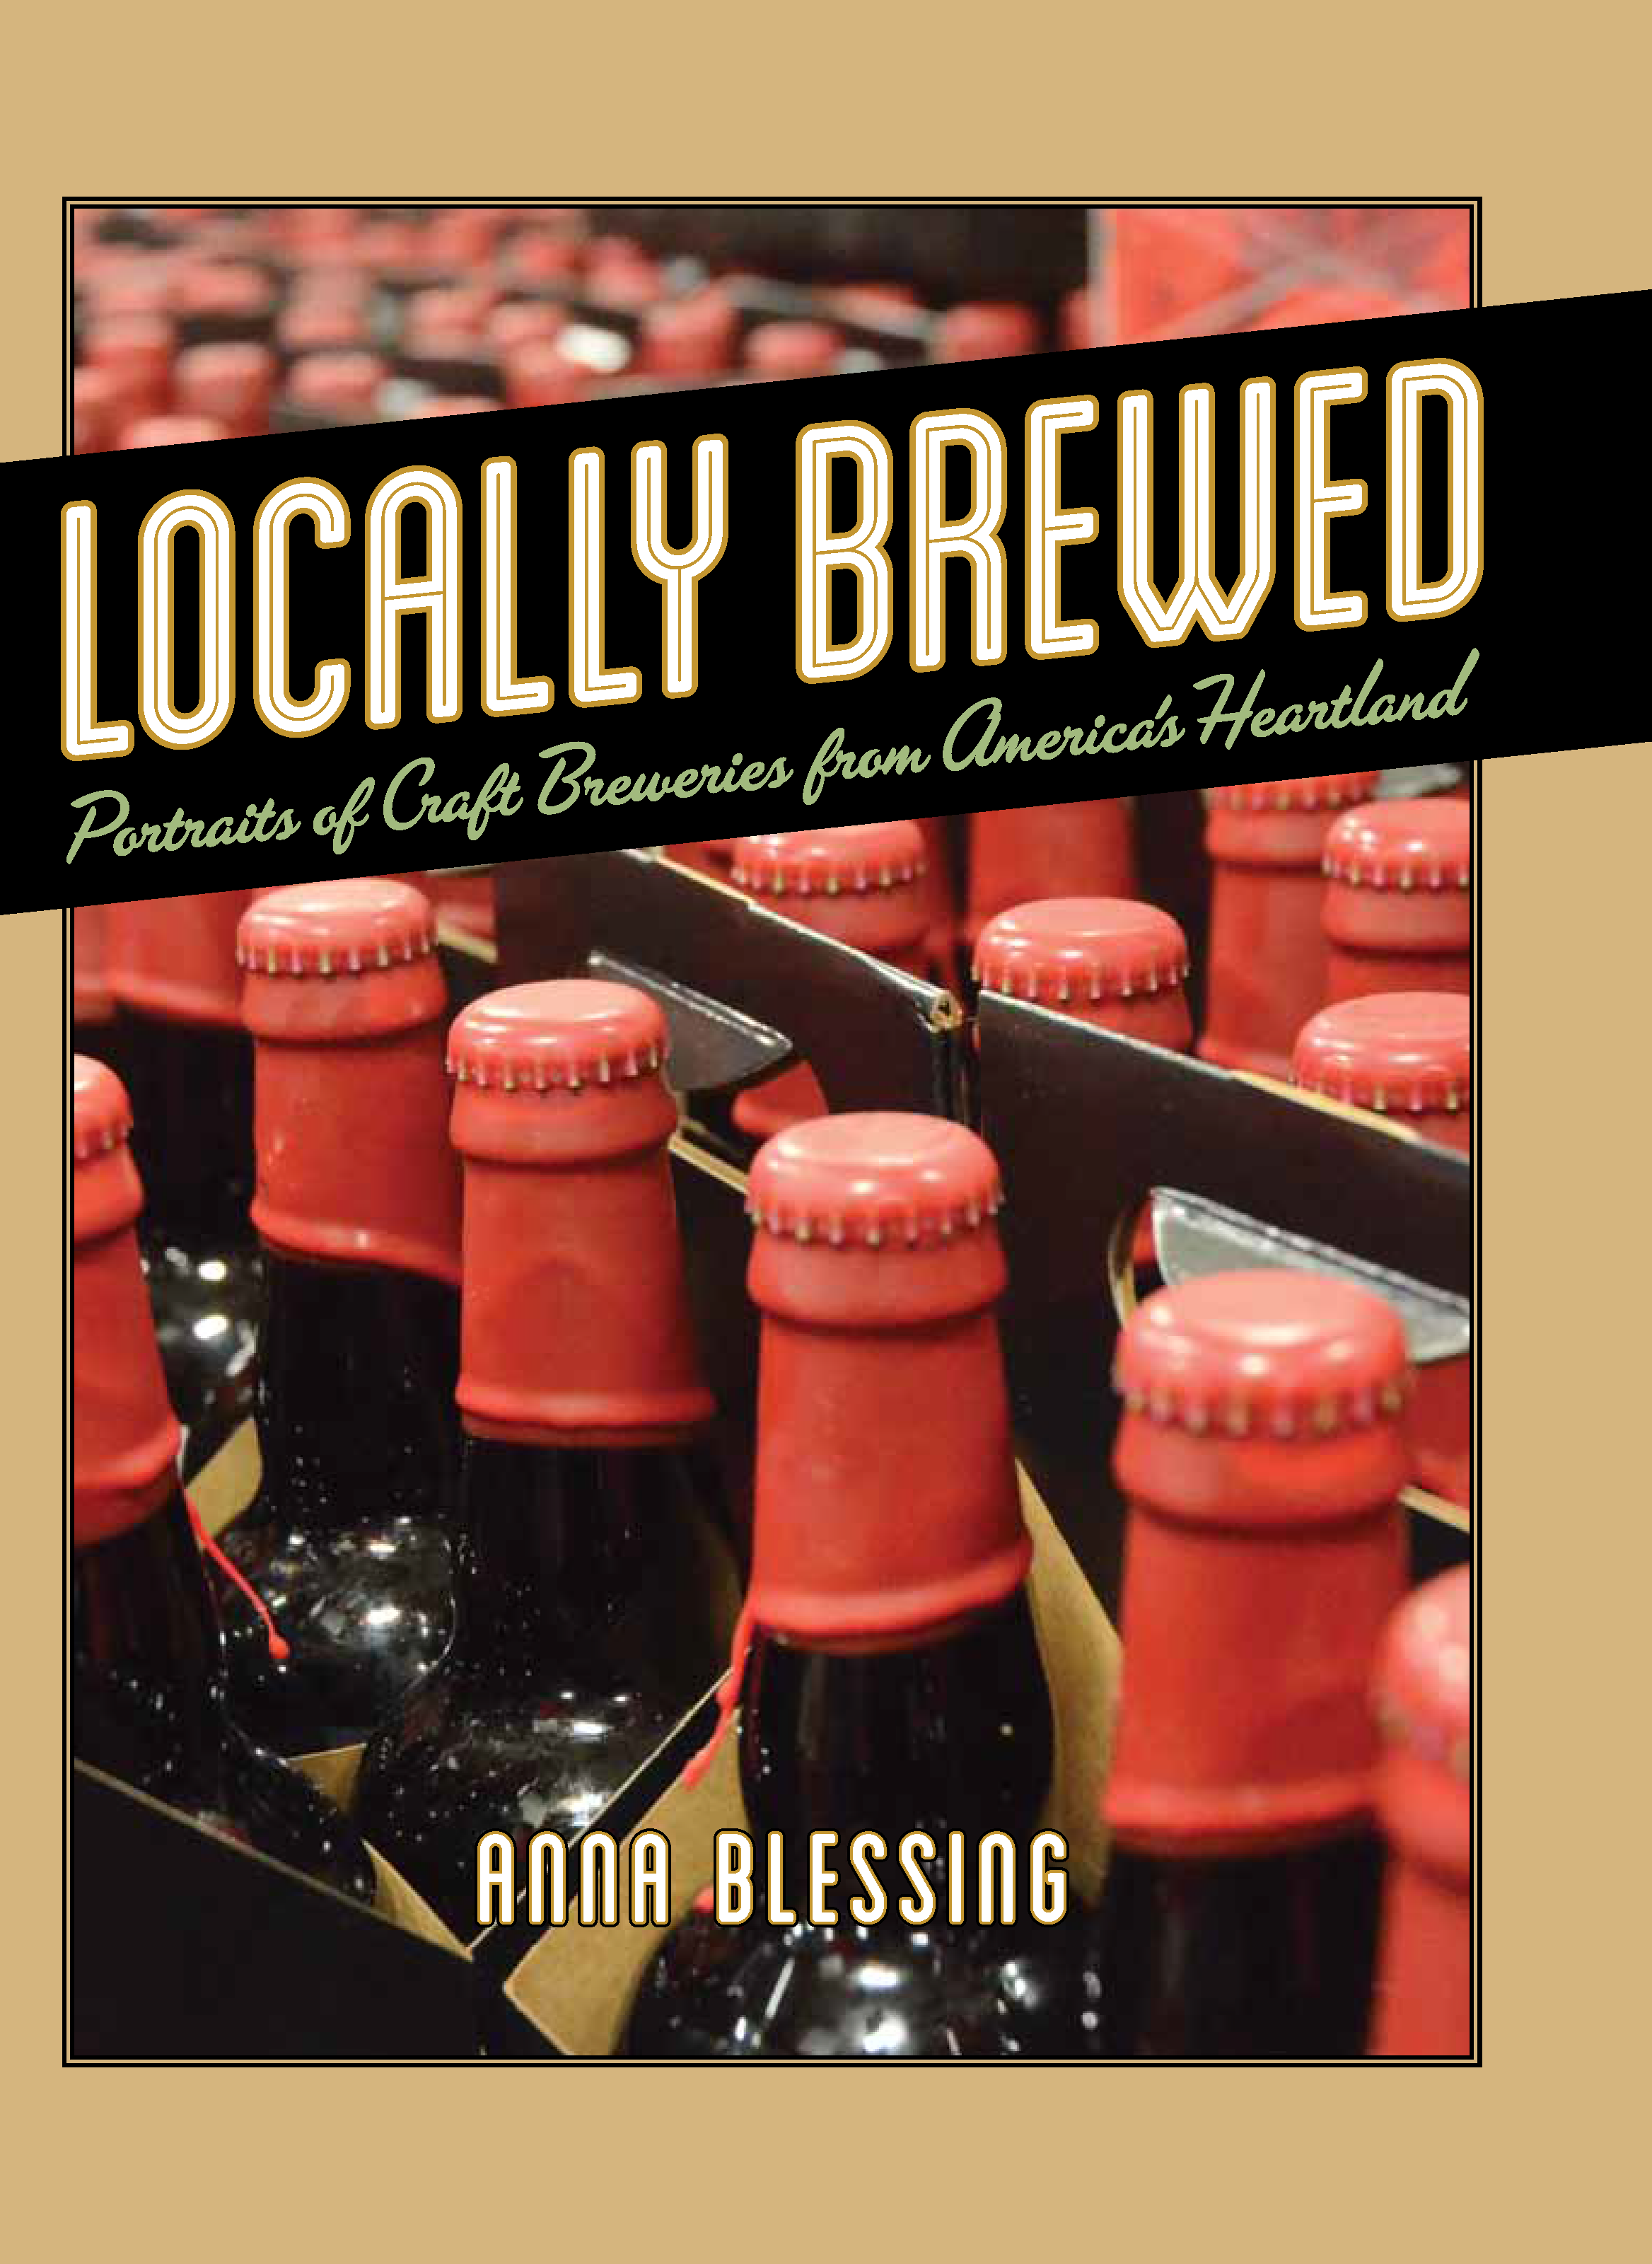 Locally Brewed_Page_01.png